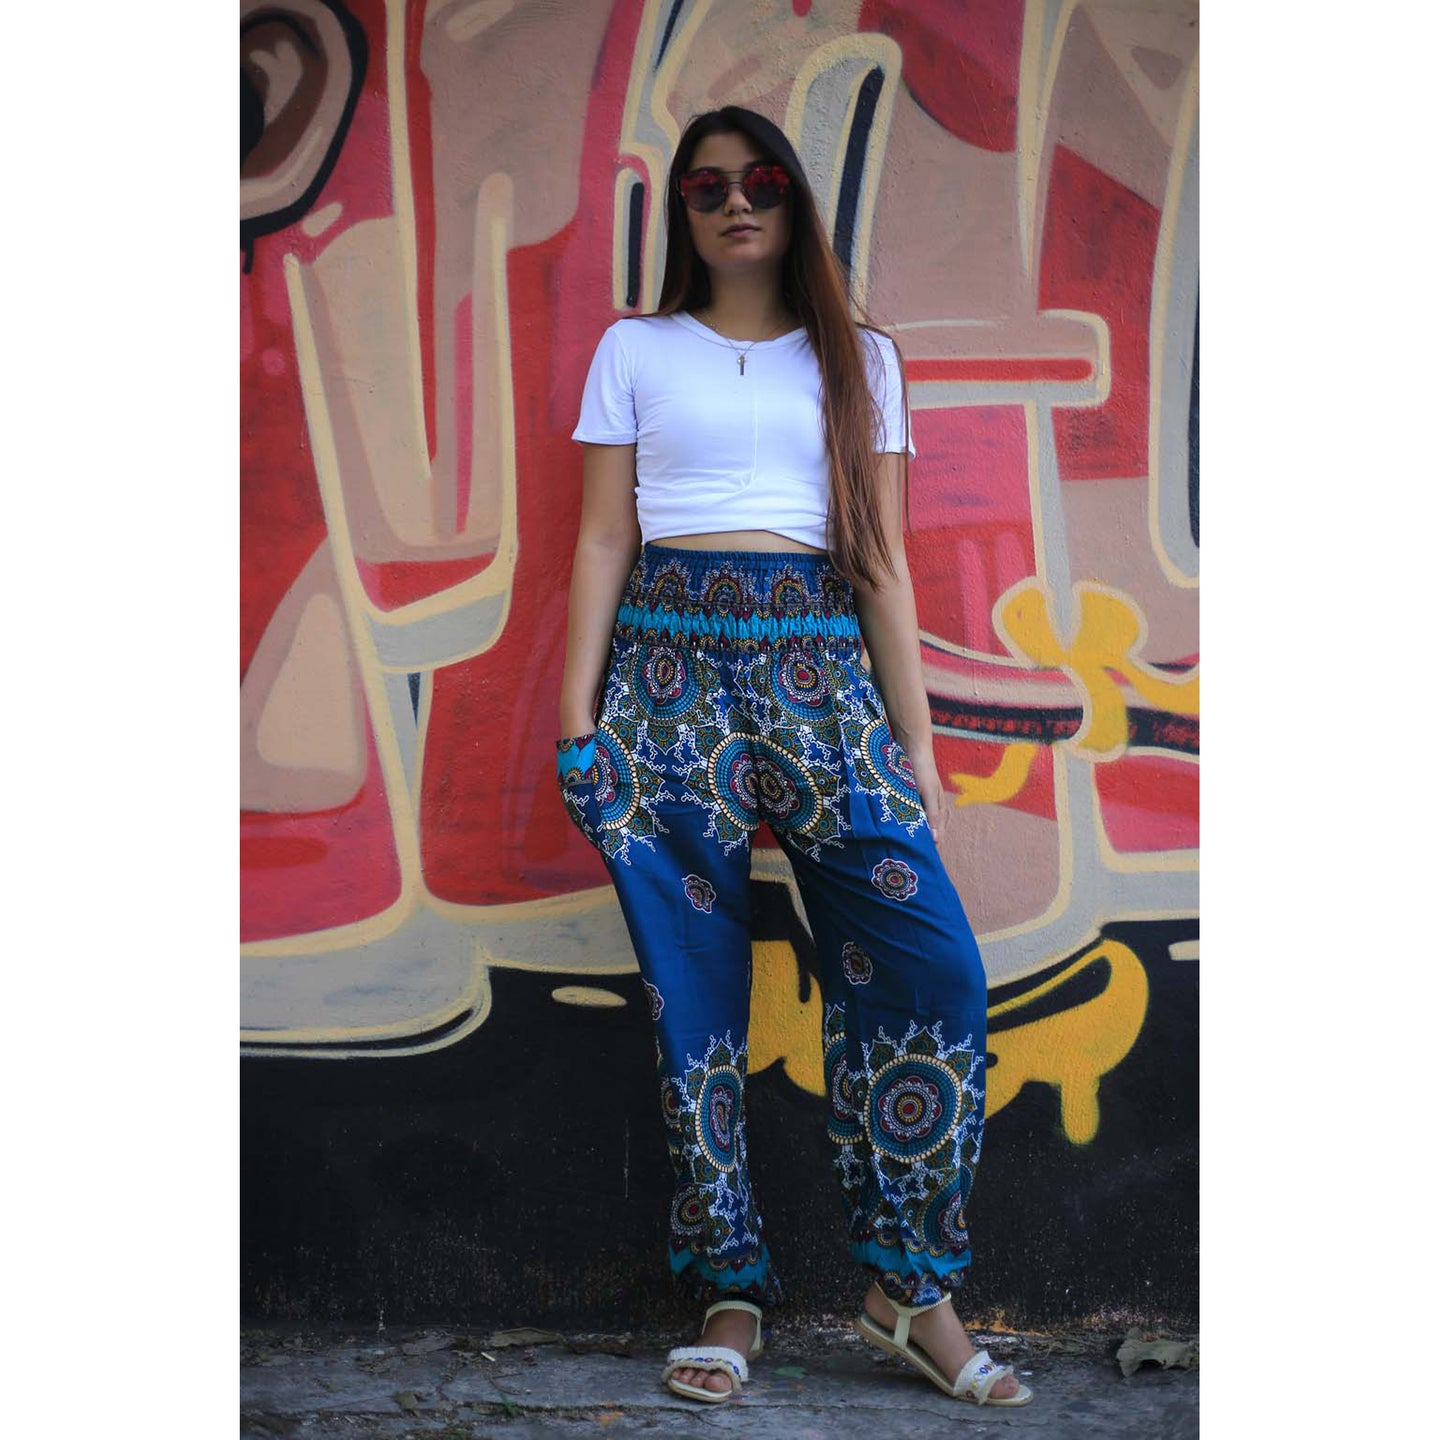 Dream catcher 135 women harem pants in Ocean blue PP0004 020135 03